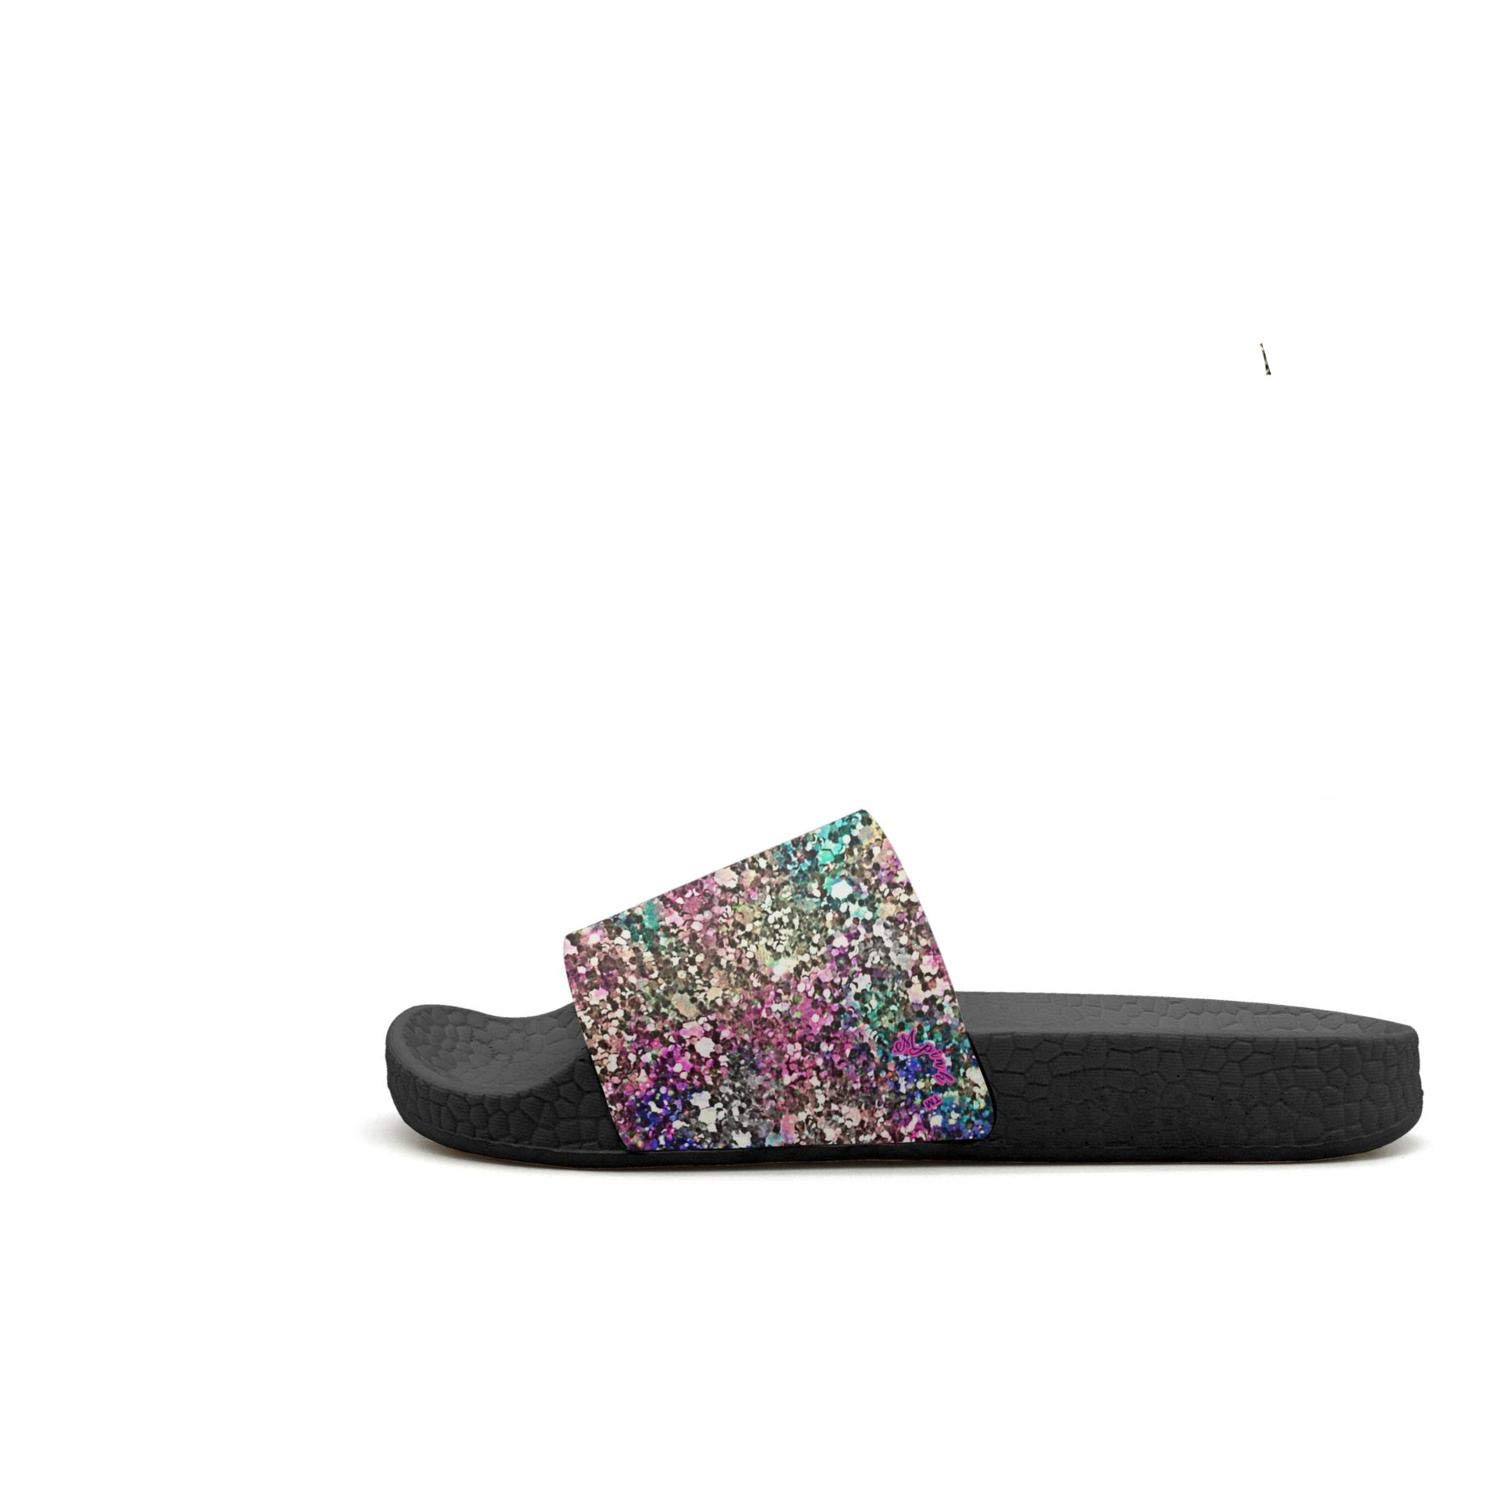 Mens Rainbow Colorful Abstract Paint Swirl Slipper for Mens Sole House Shoes